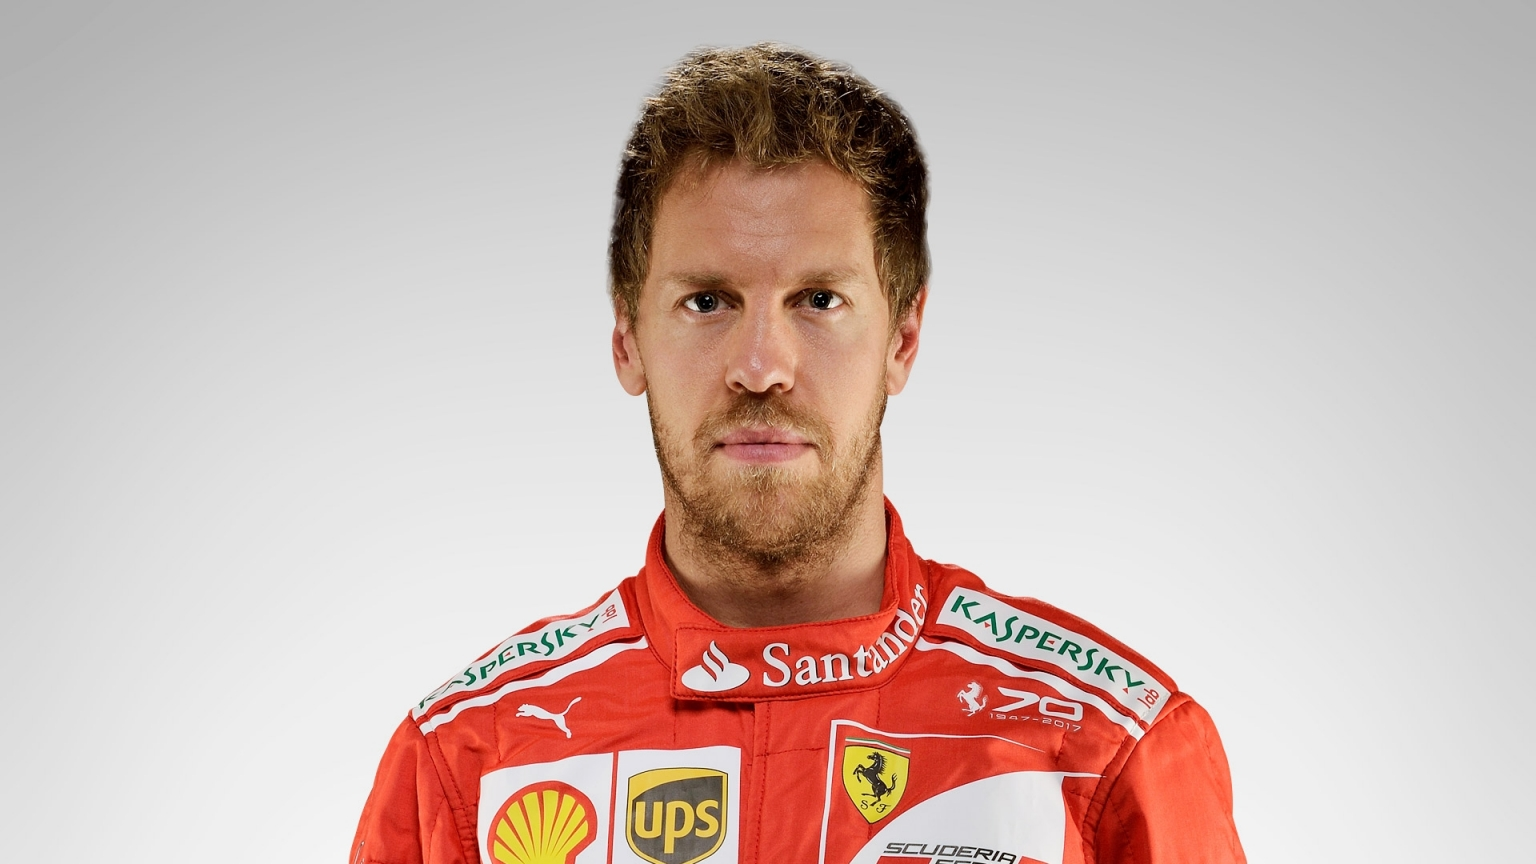 Sebastian Vettel Staying at Ferrari Camp - Newslibre